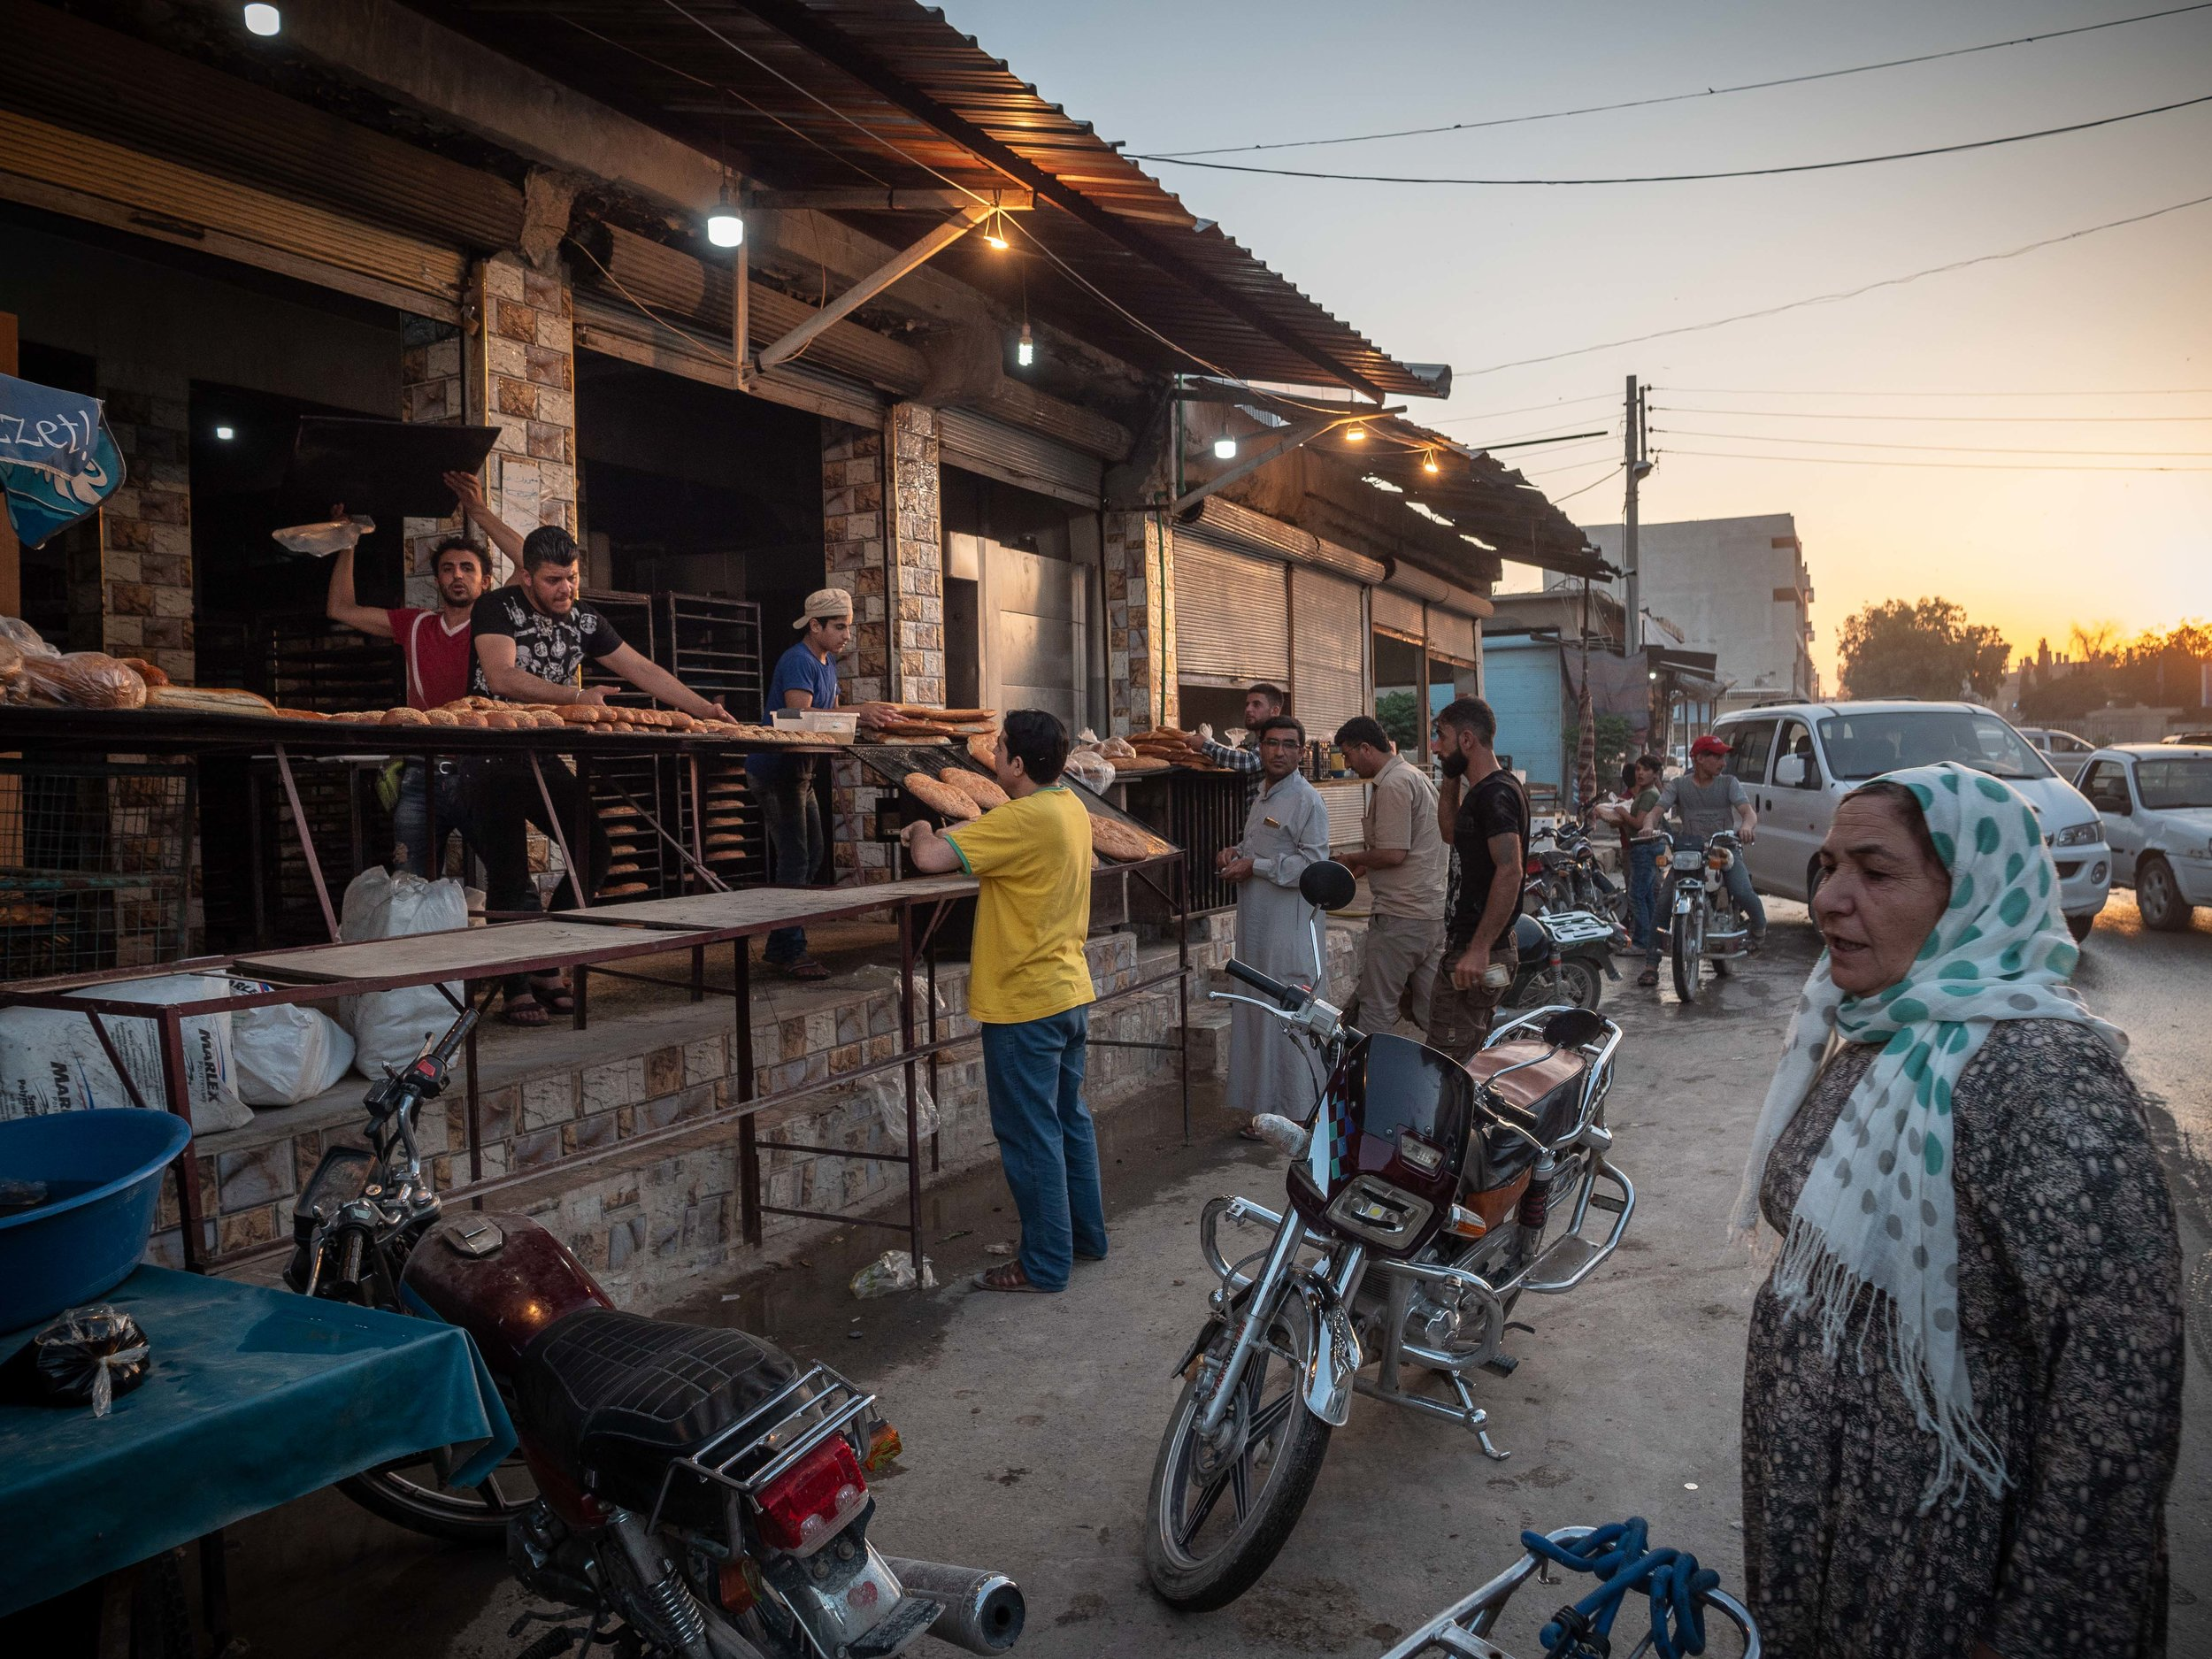 28/05/19, Kobane, Syria - A bakery selling bread on the street in the evening.